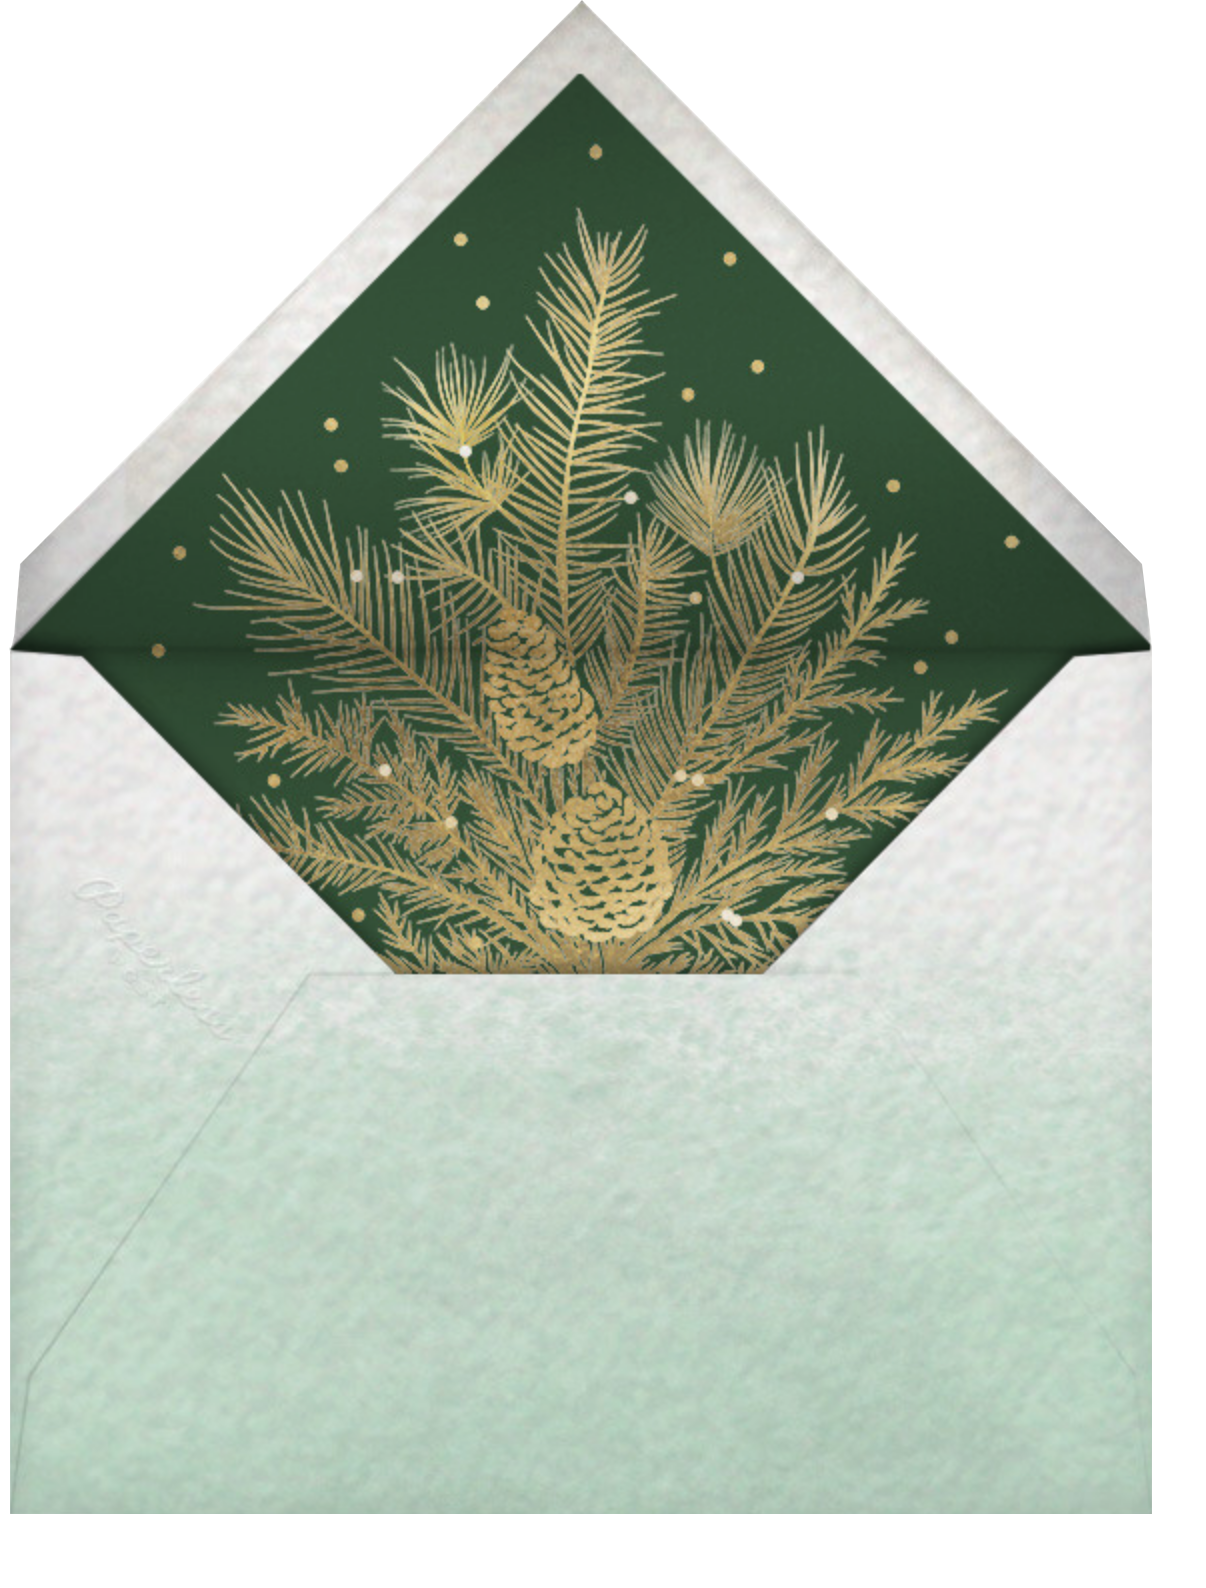 Yule Blooms Christmas (Square) - Paperless Post - Christmas - envelope back